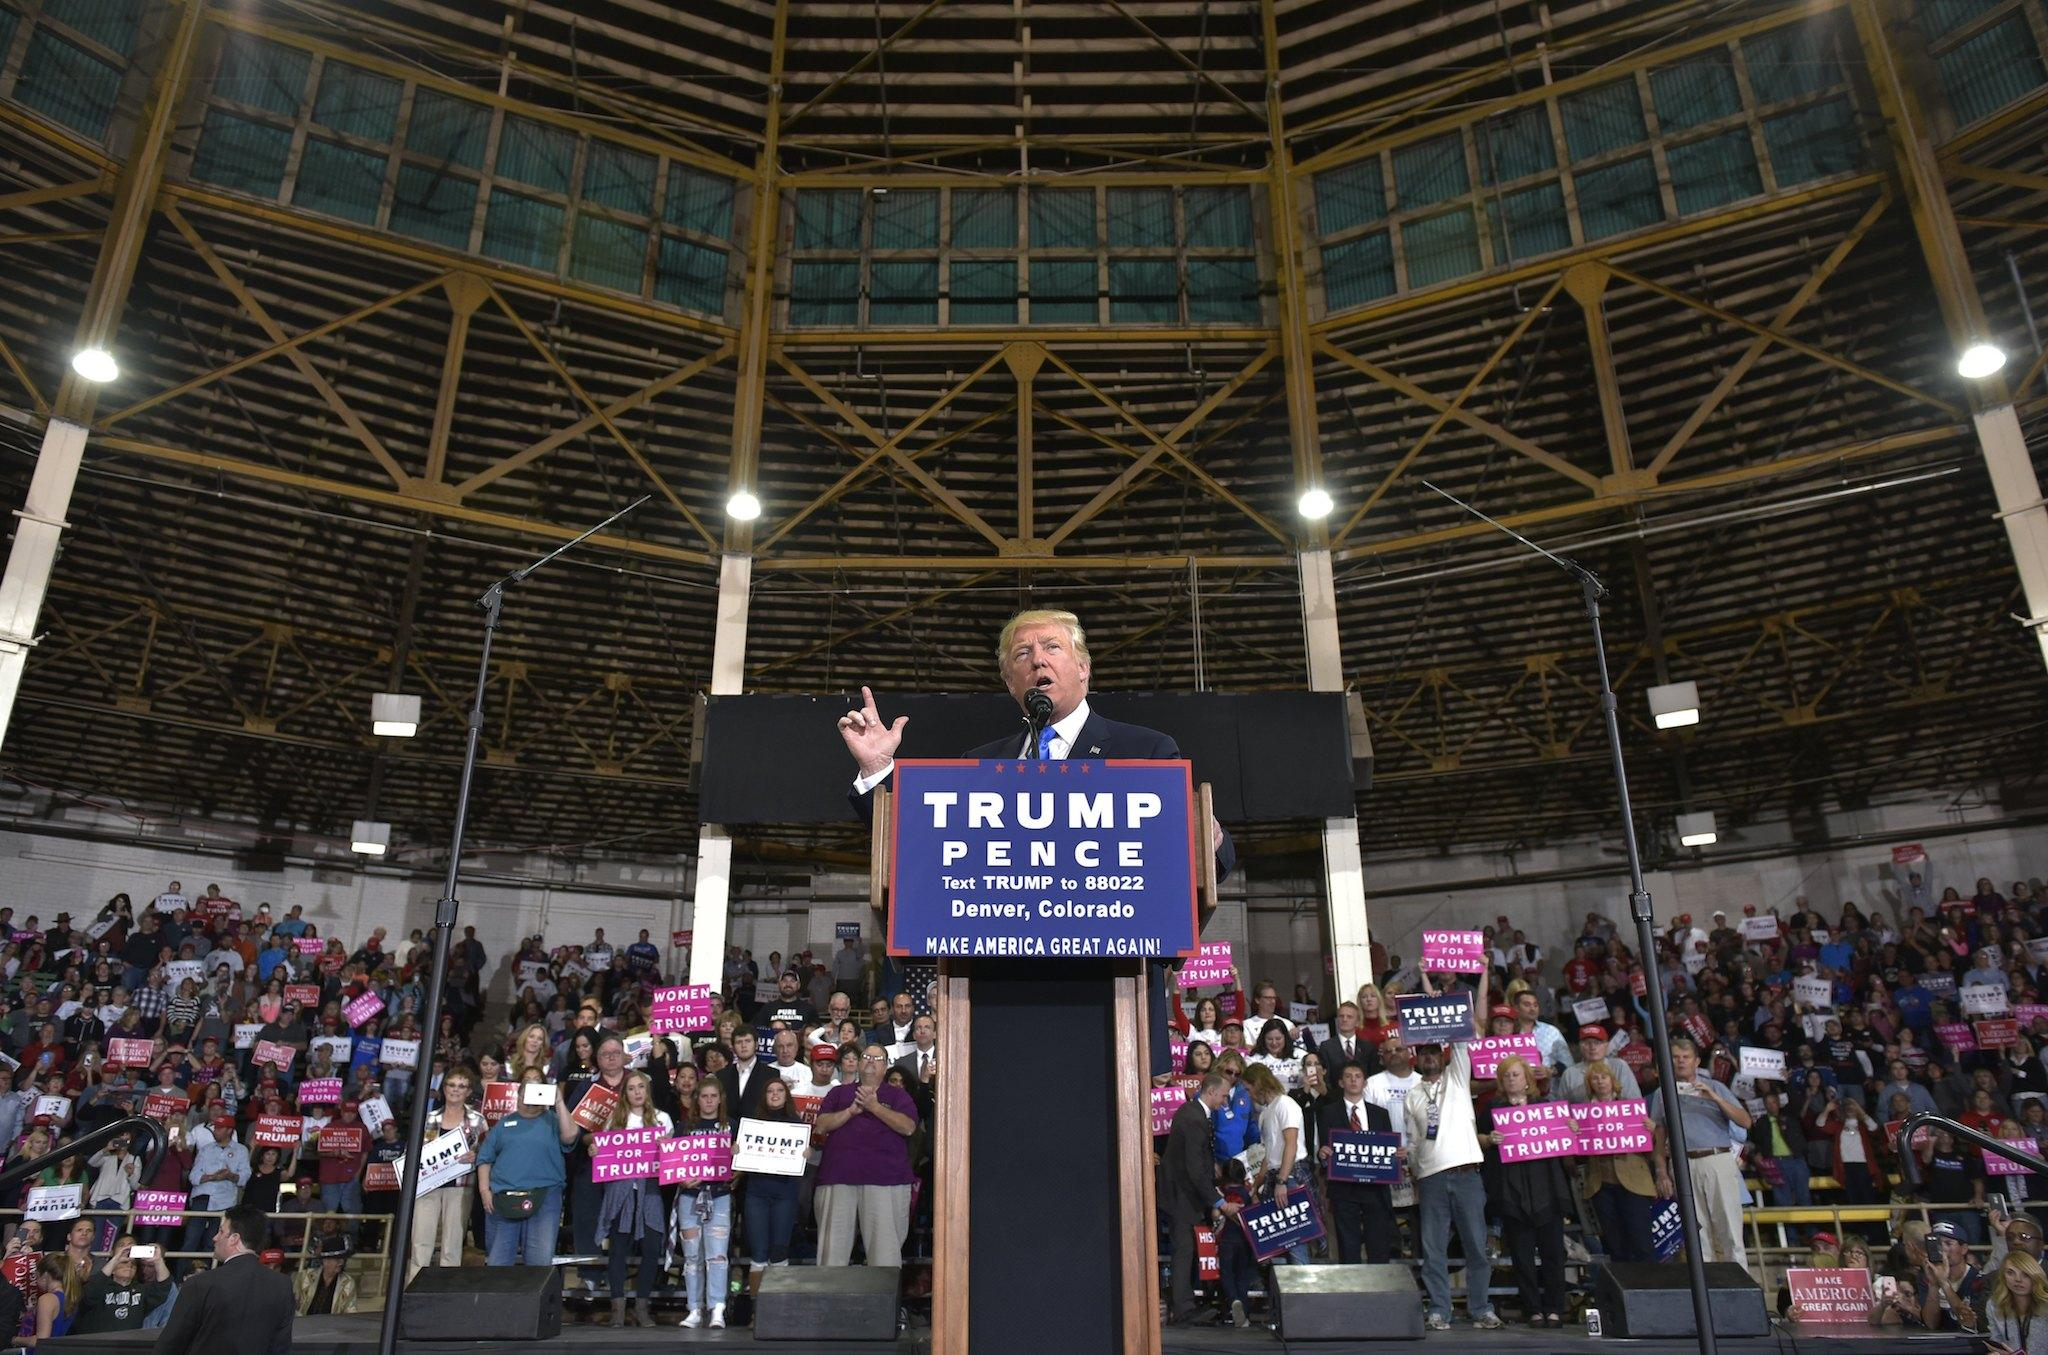 Donald Trump Suing Nevada Officials For Keeping Polls Open Two Hours Extra The Independent The Independent